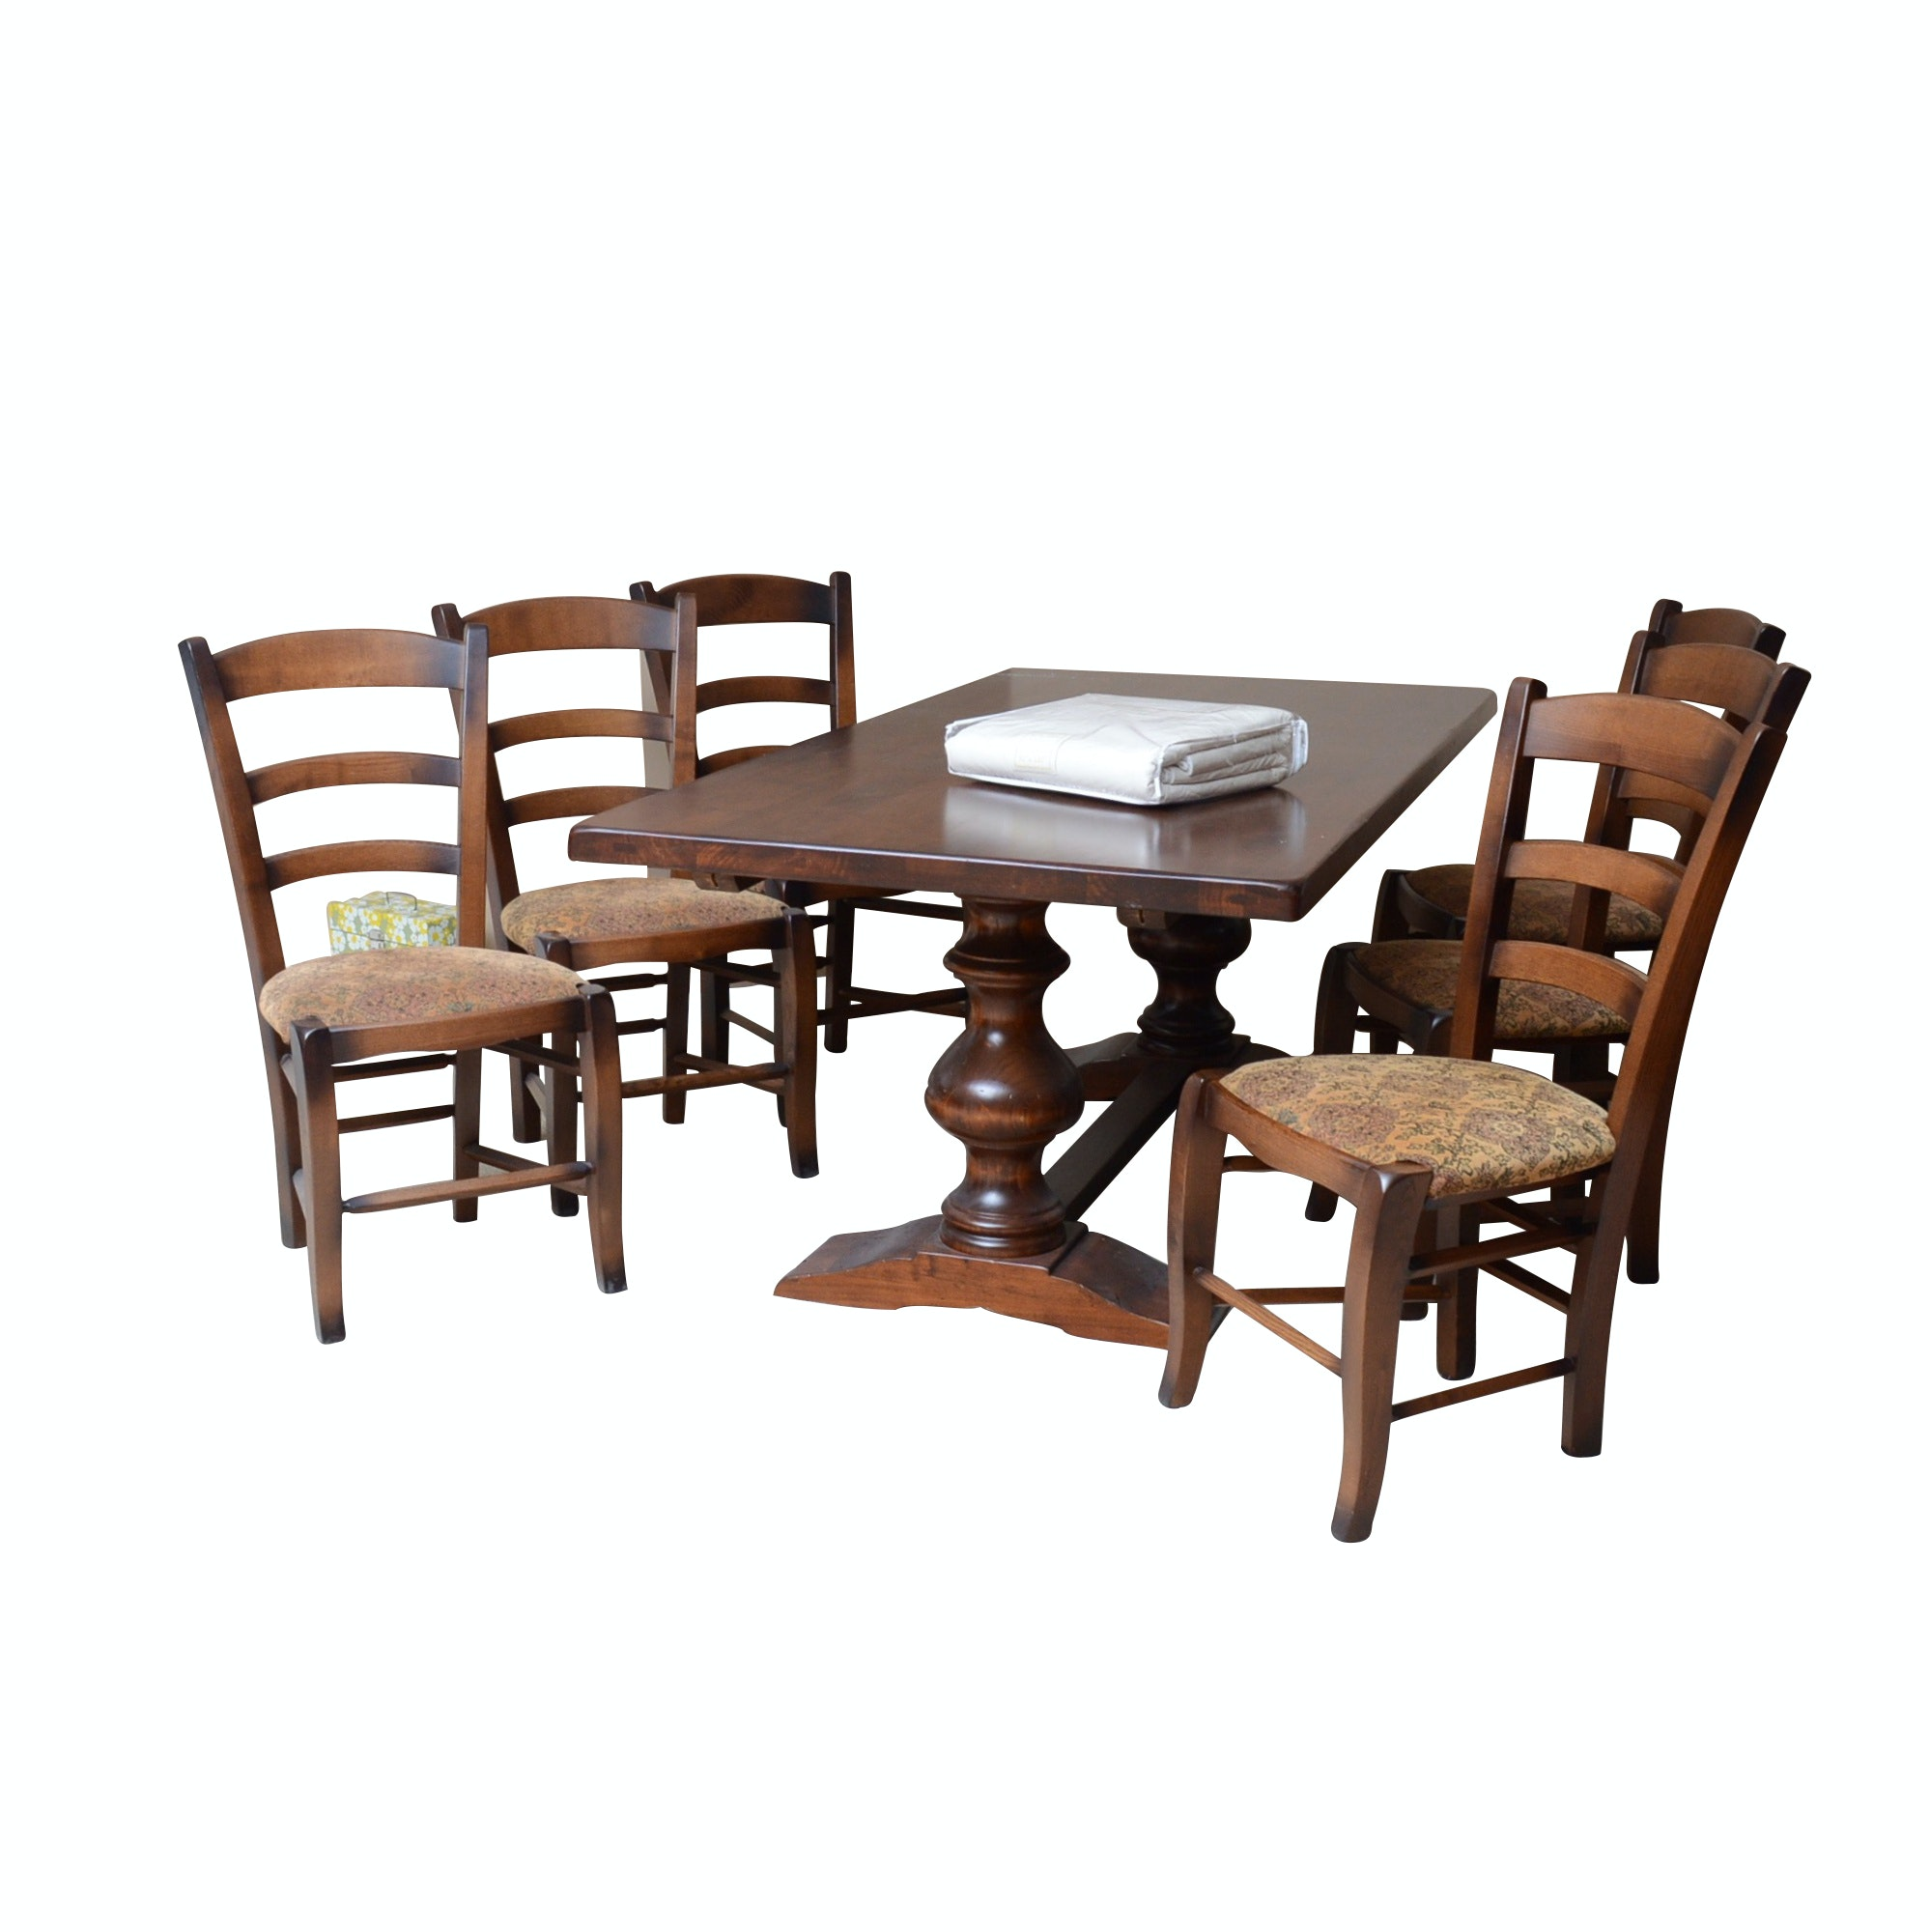 Arhaus Solid Double Pedestal Pine Table with Six Side Chairs and Two Leaves